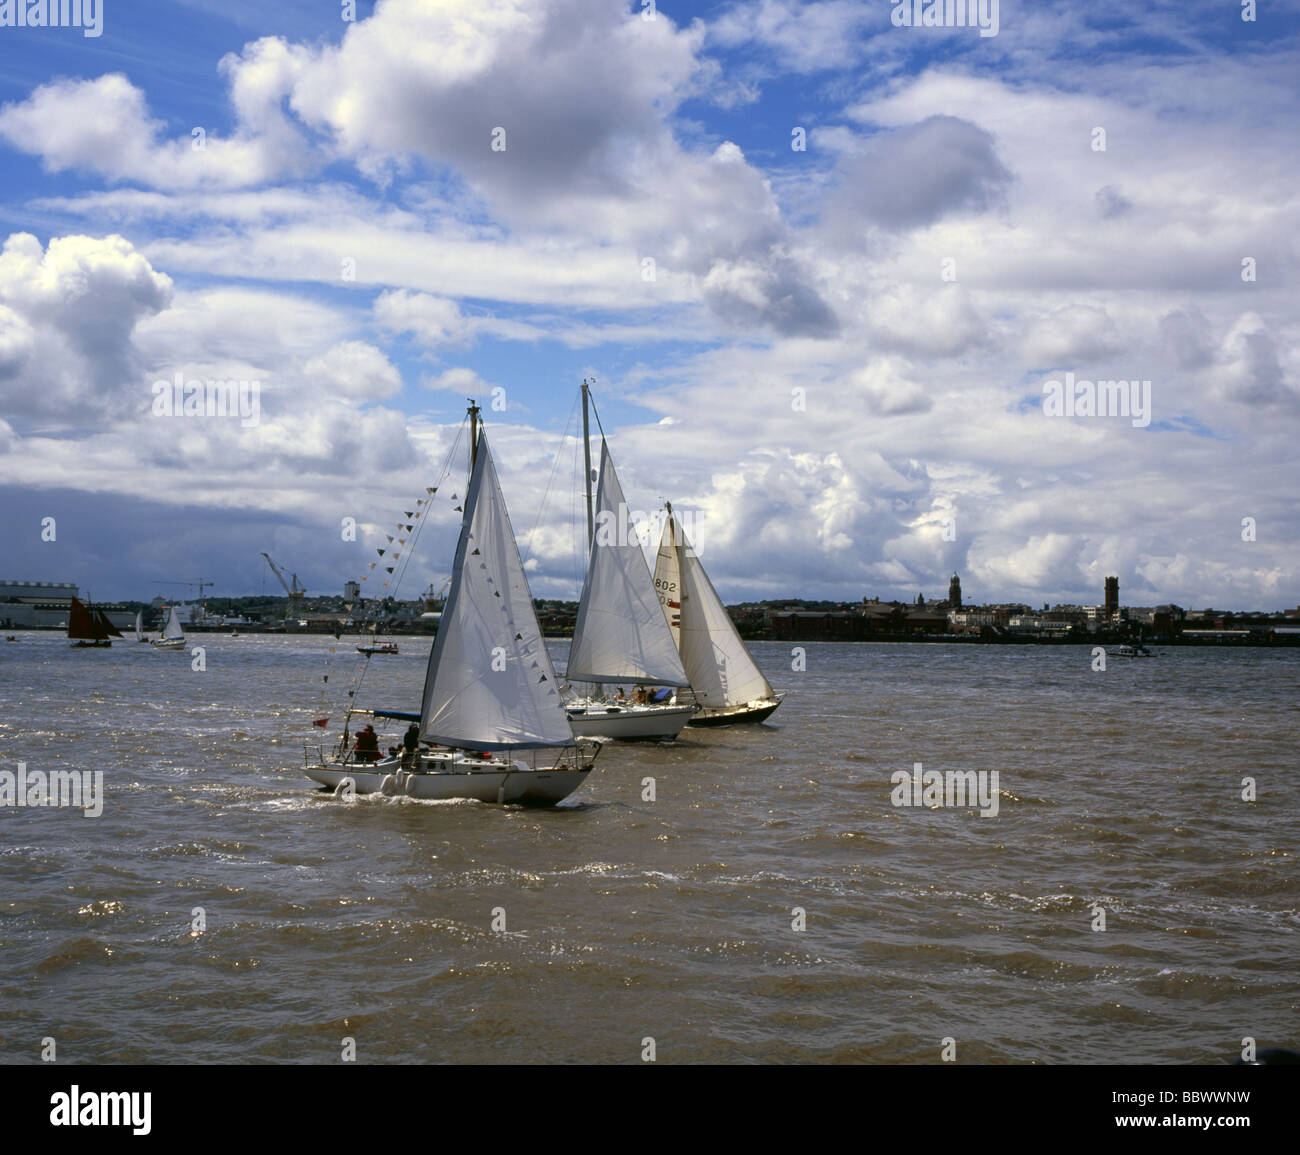 Yachts sailing on The River Mersey Liverpool Merseyside England - Stock Image